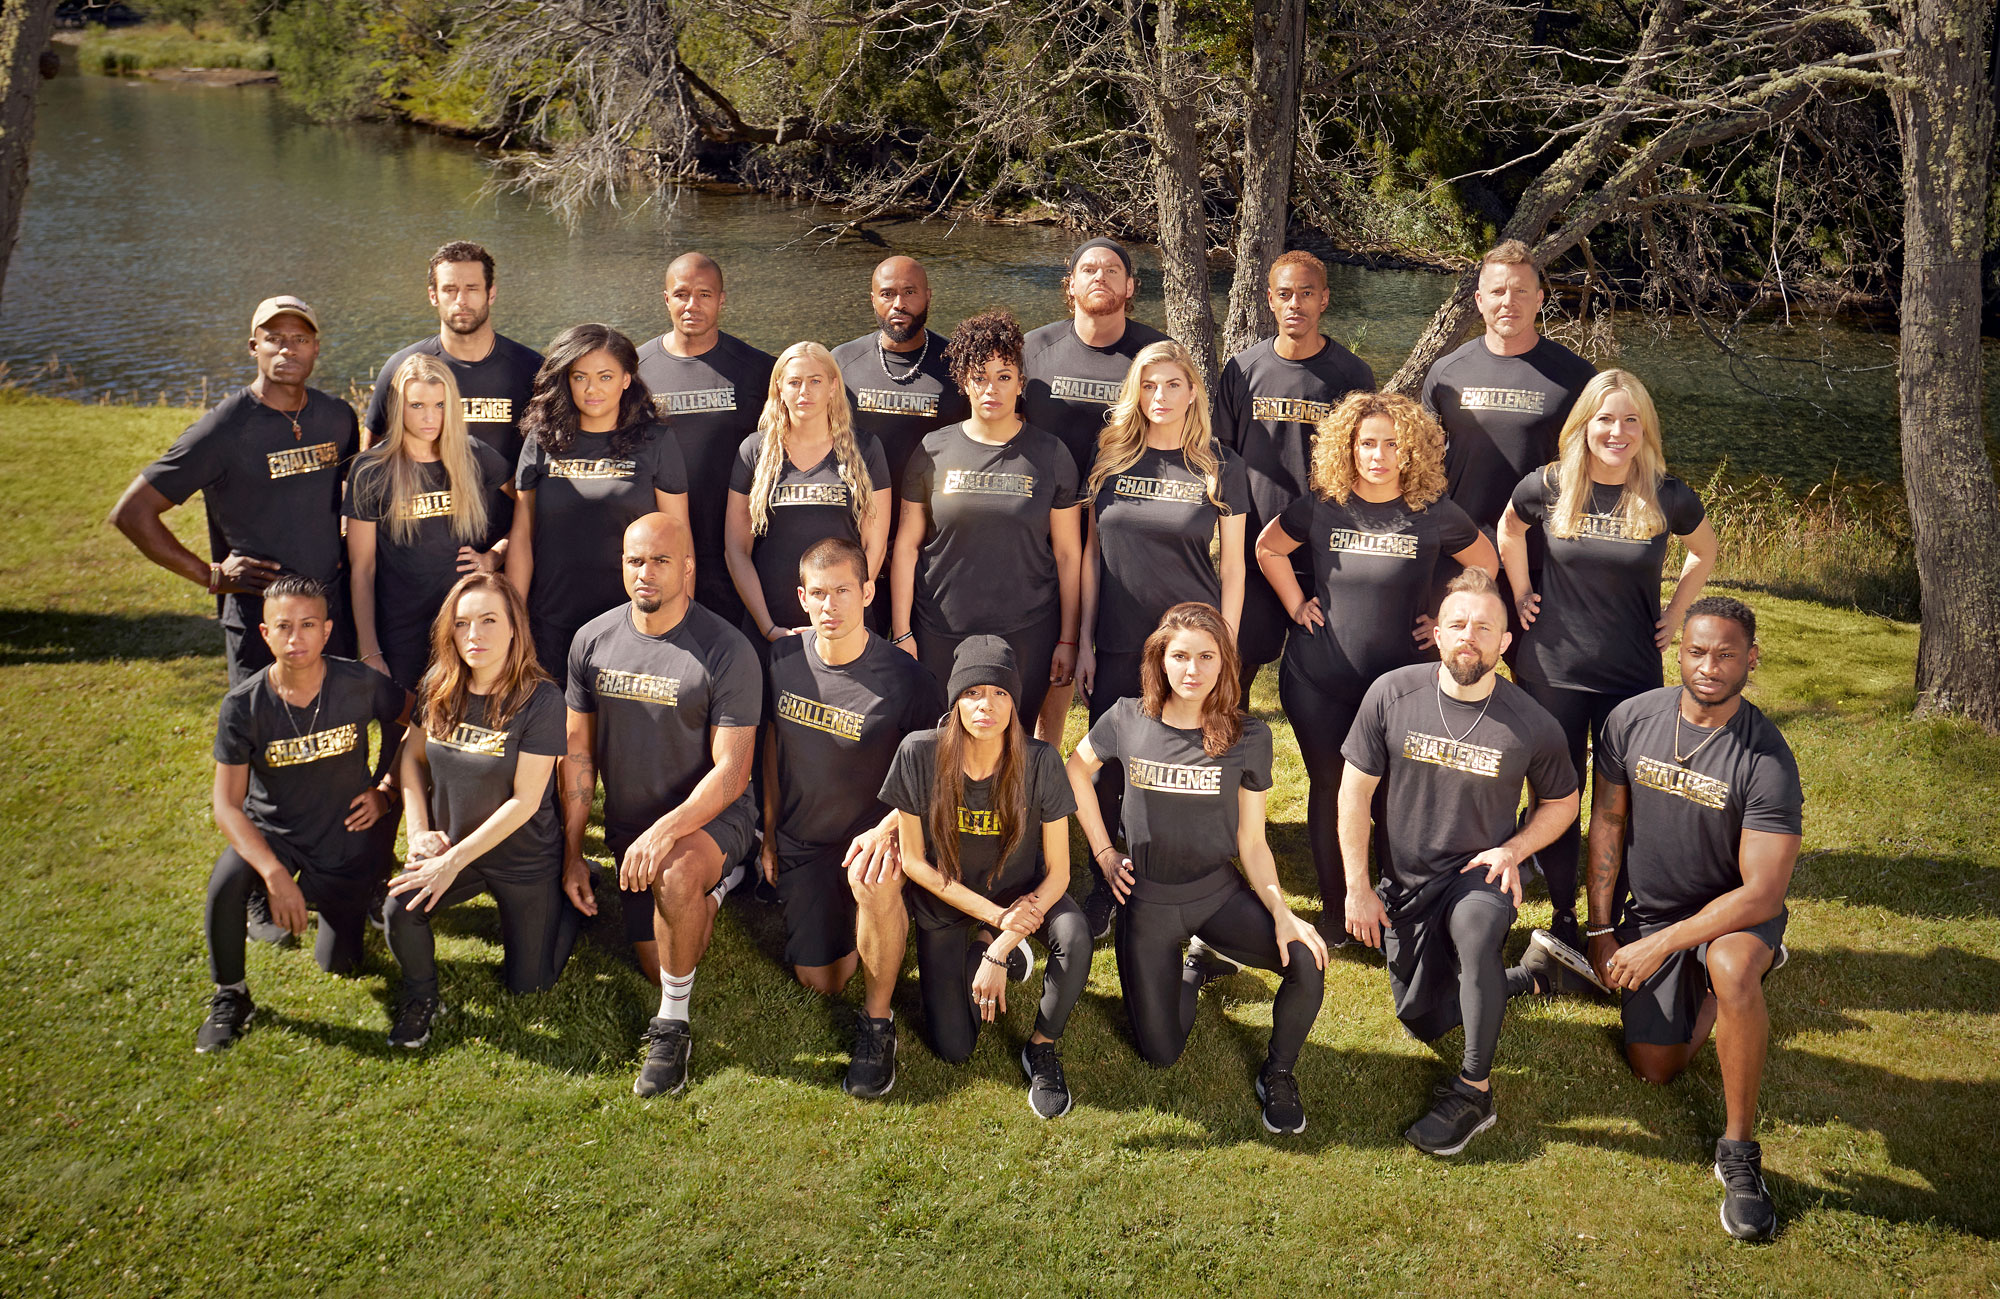 The Challenge: All Stars' Cast Revealed, Watch 1st Trailer